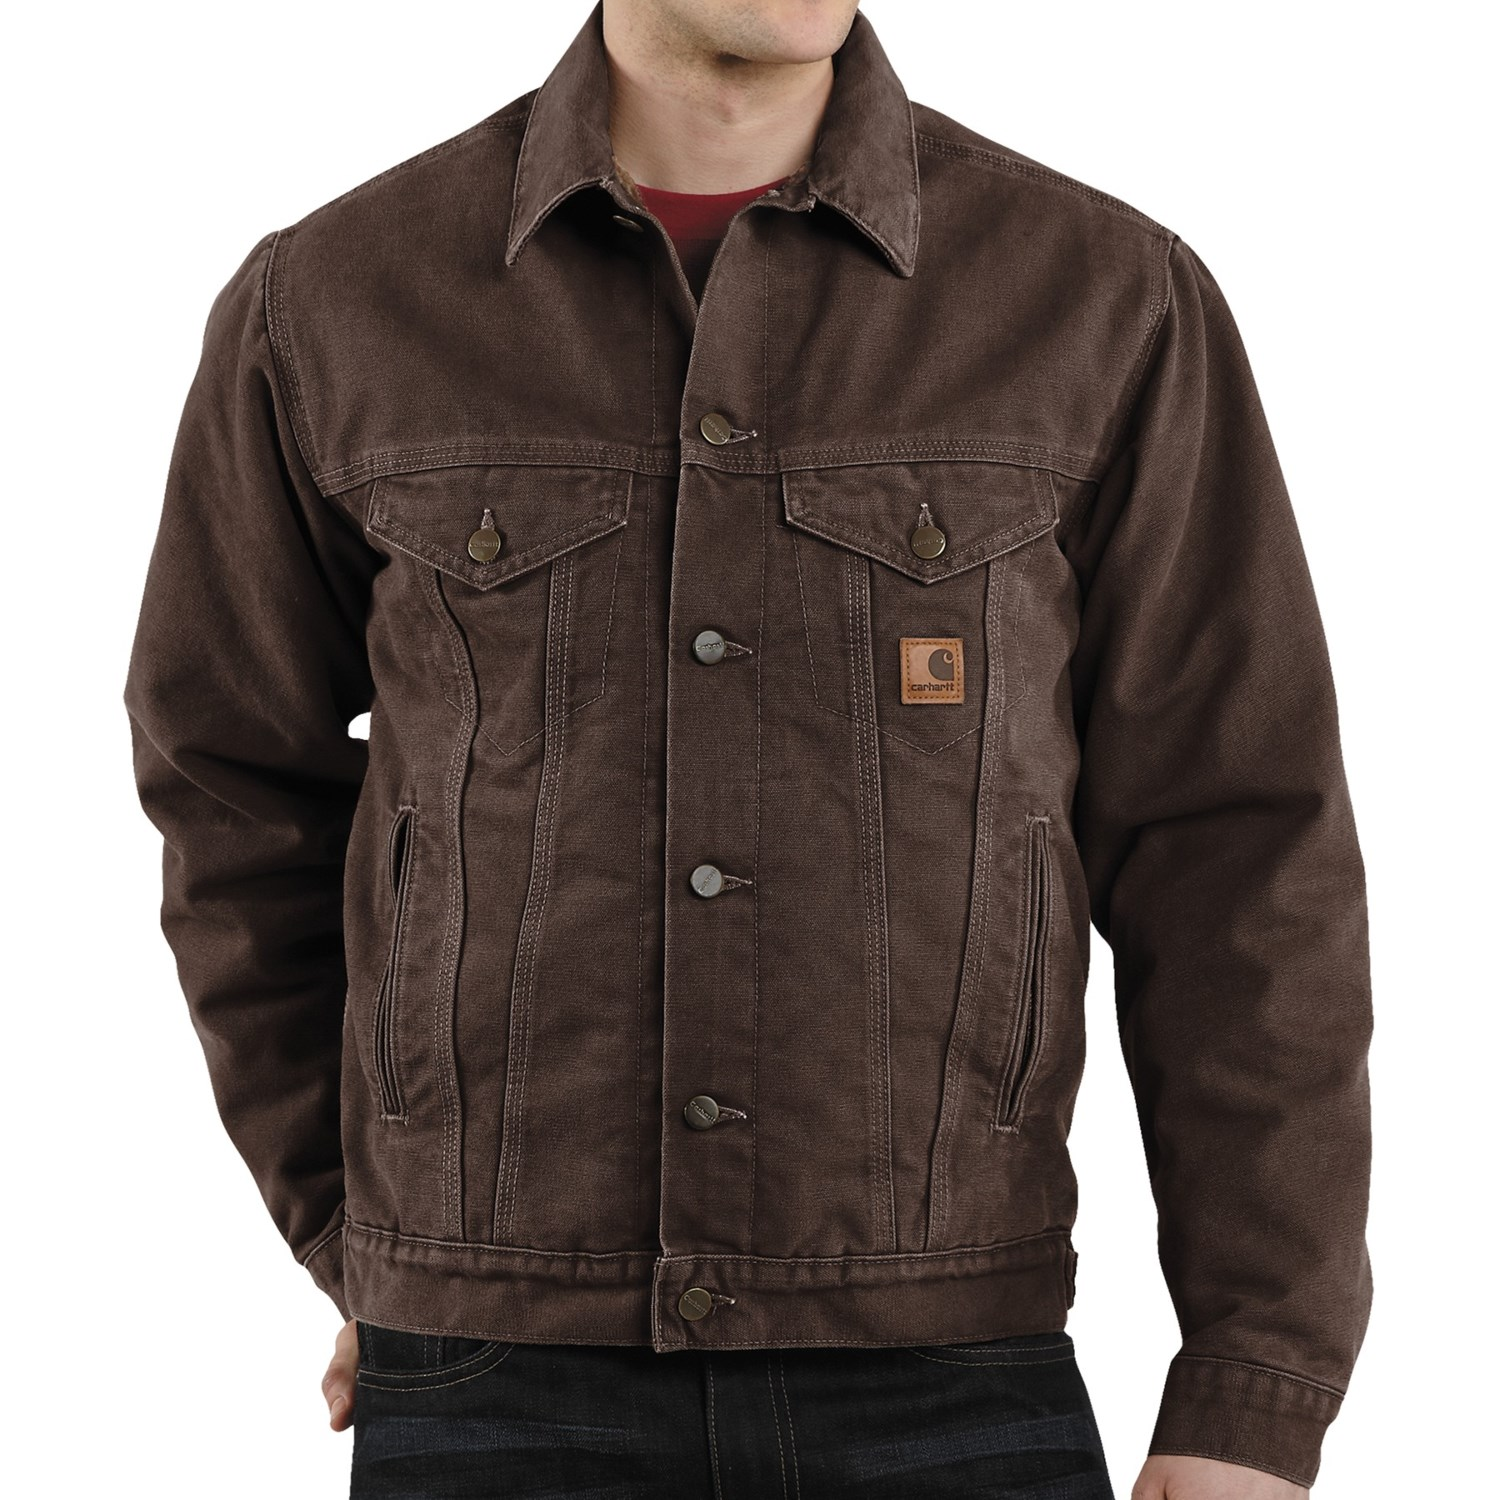 Dickies Adult Thermal-Lined Hooded Fleece Jacket - Brown Duck - XL Deal